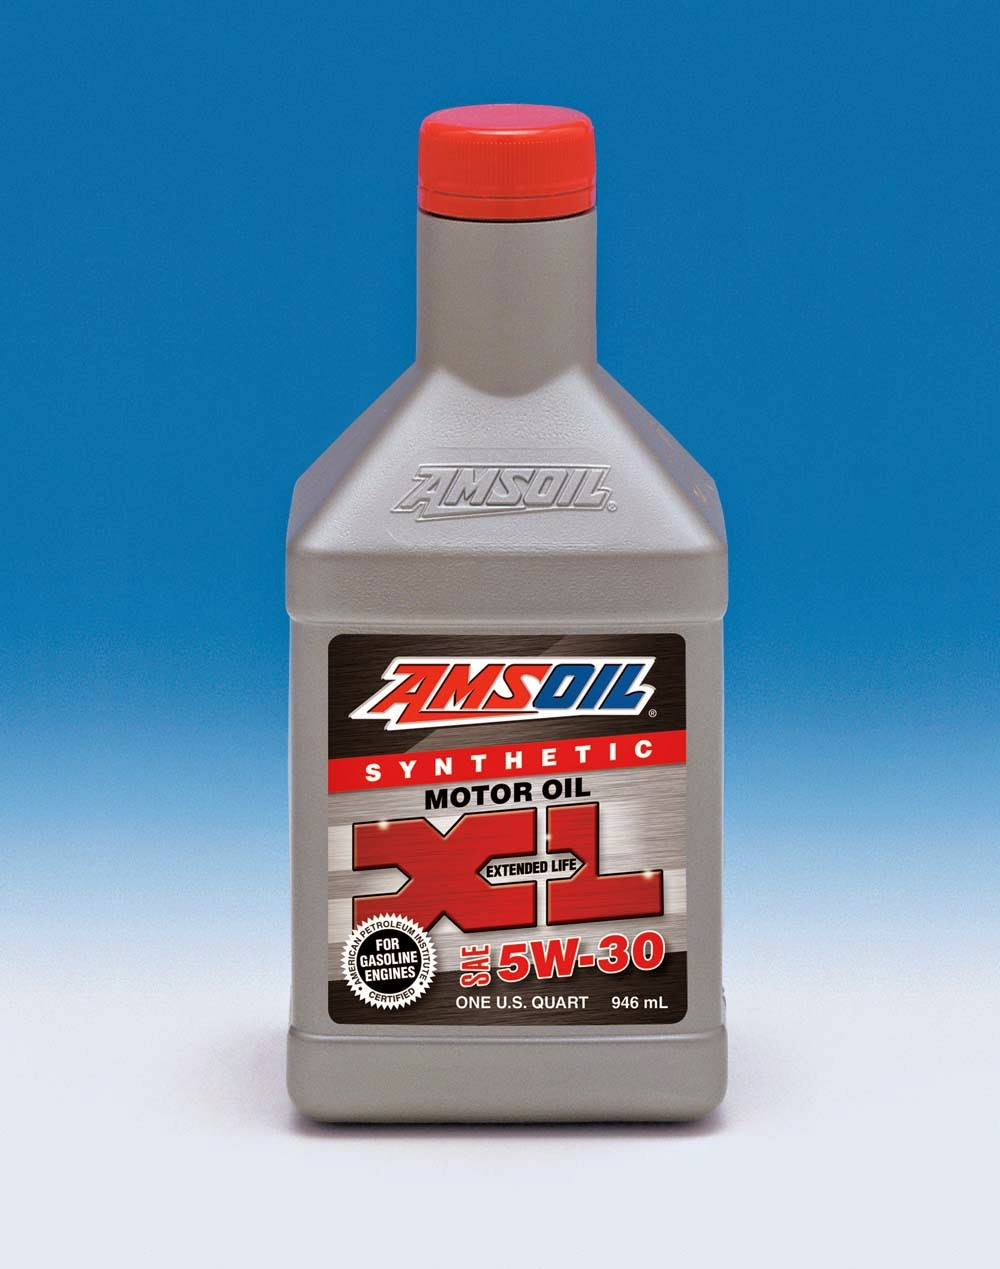 amsoil update what does the w stand for in 5w 30 motor oil